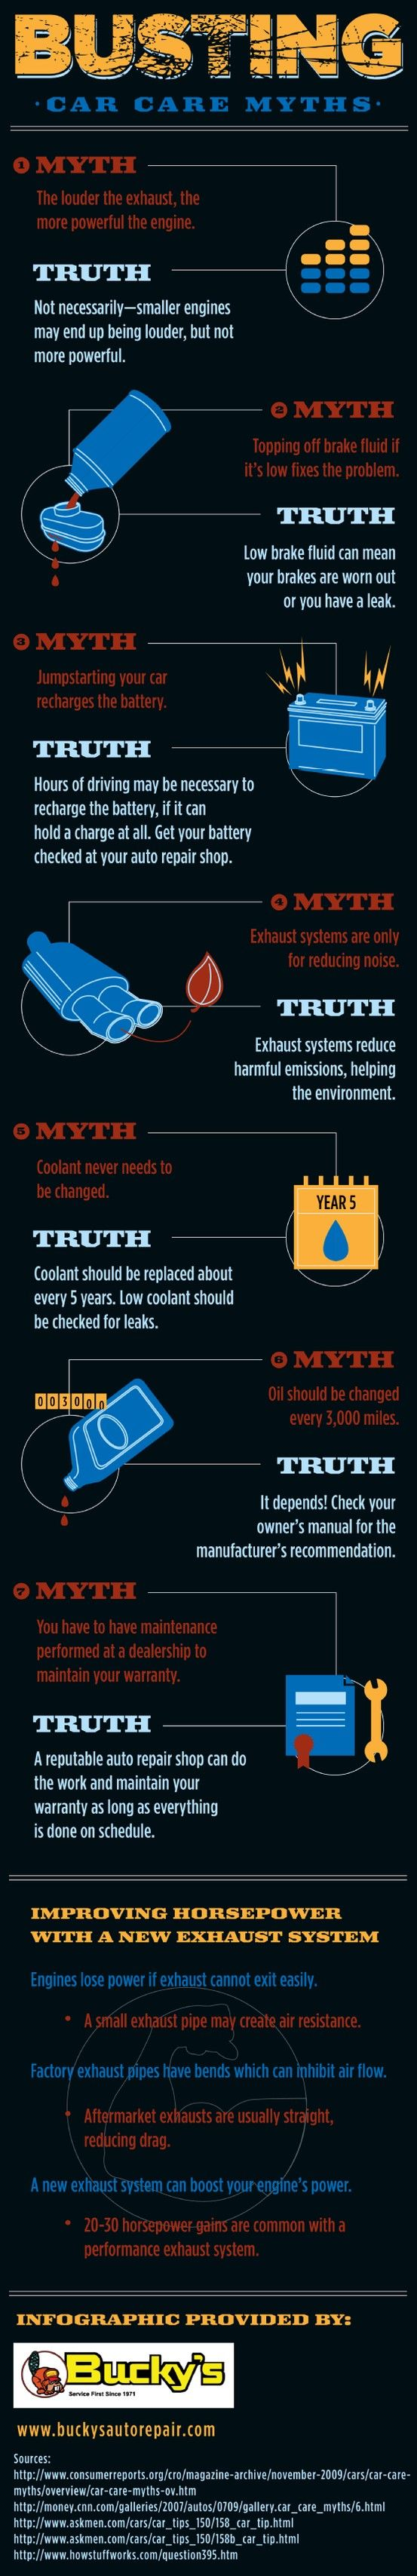 Does your car really need an oil change every 3,000 miles? The answer depends on the age and model of your car, so you should check your owner's manual for the manufacturer's recommendation. Click on this infographic for more car care tips!